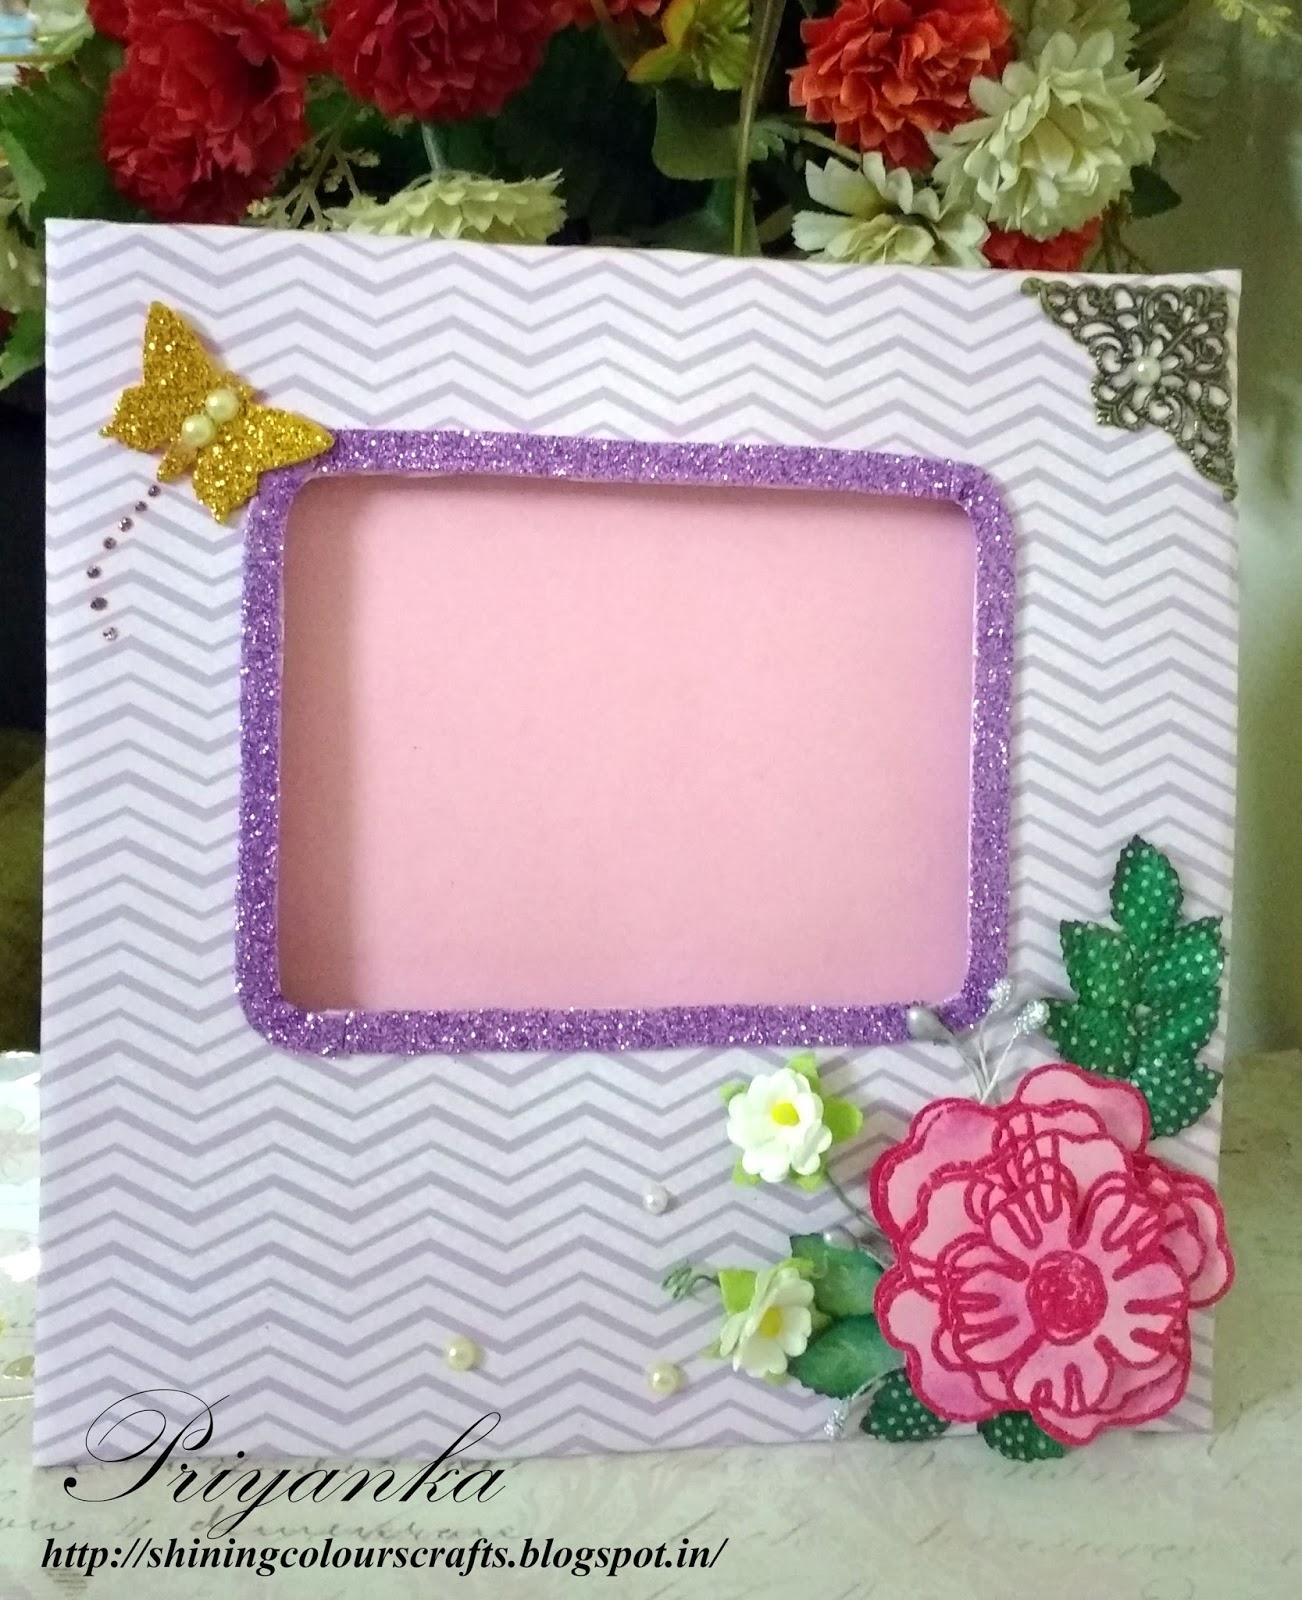 Shining colours handmade crafts photo frame with 3d decoupage flower at the corner you could see the beautiful 3d decoupage flower made using stamping and heat embossing jeuxipadfo Image collections